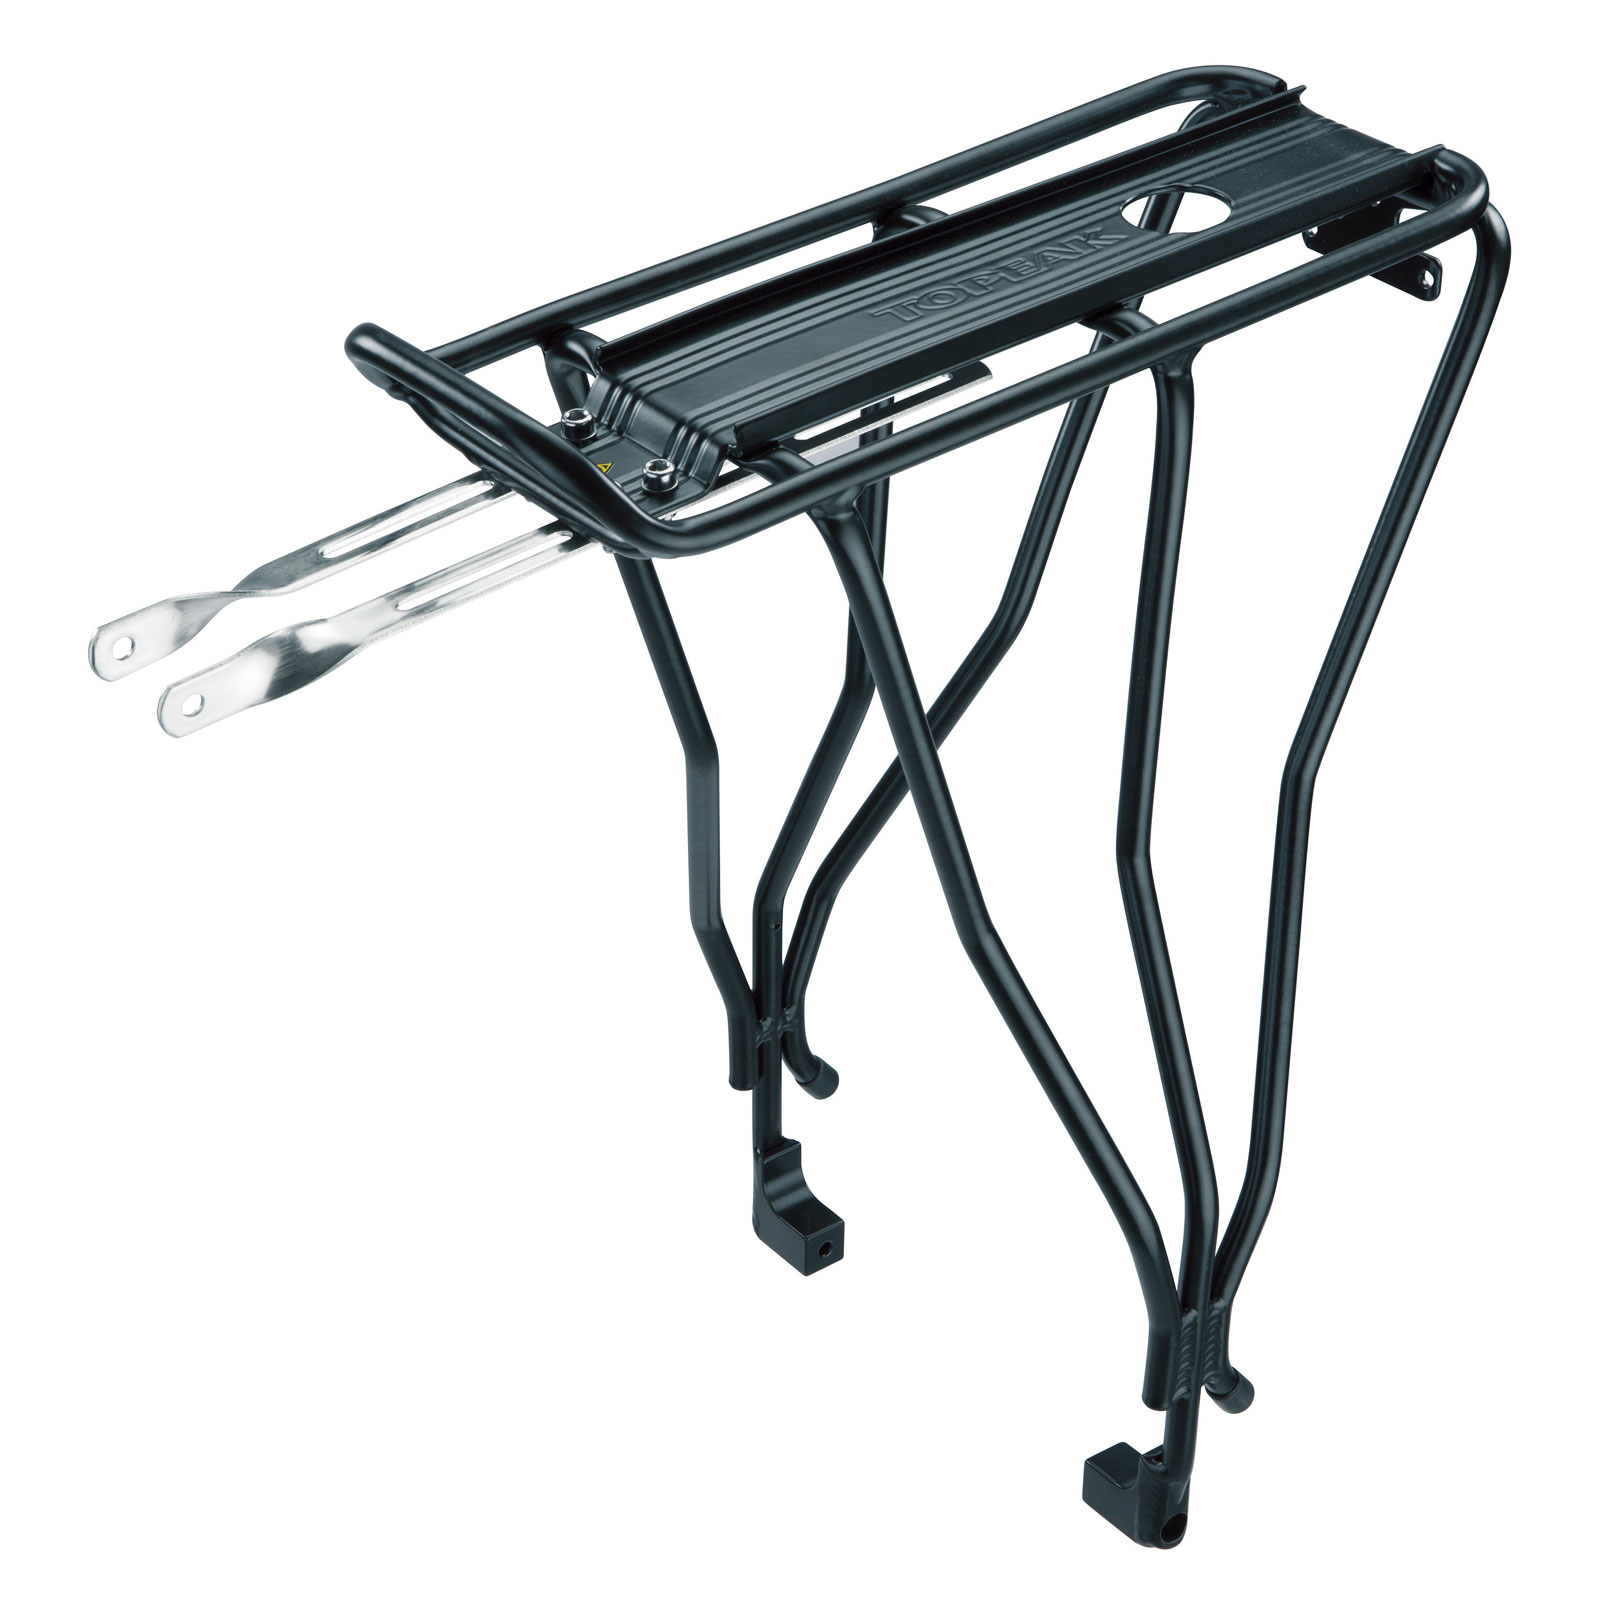 Topeak Babyseat II Rear Mount Quick Release Bike Rack for BabySeat II Child Seat